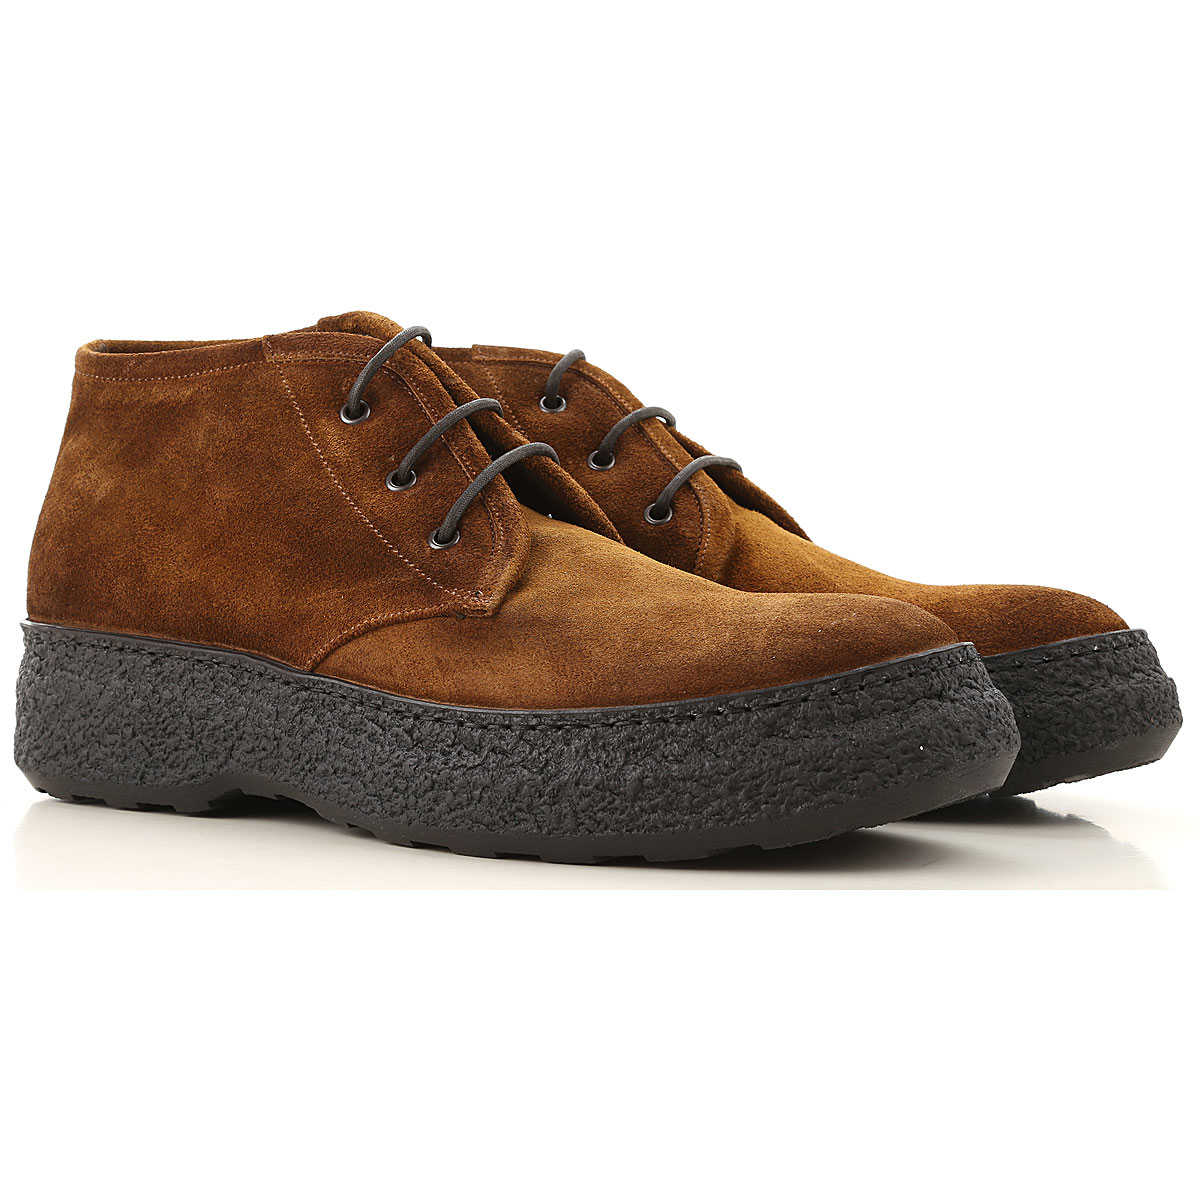 Pantanetti Lace Up Shoes for Men Oxfords Derbies and Brogues SE - GOOFASH